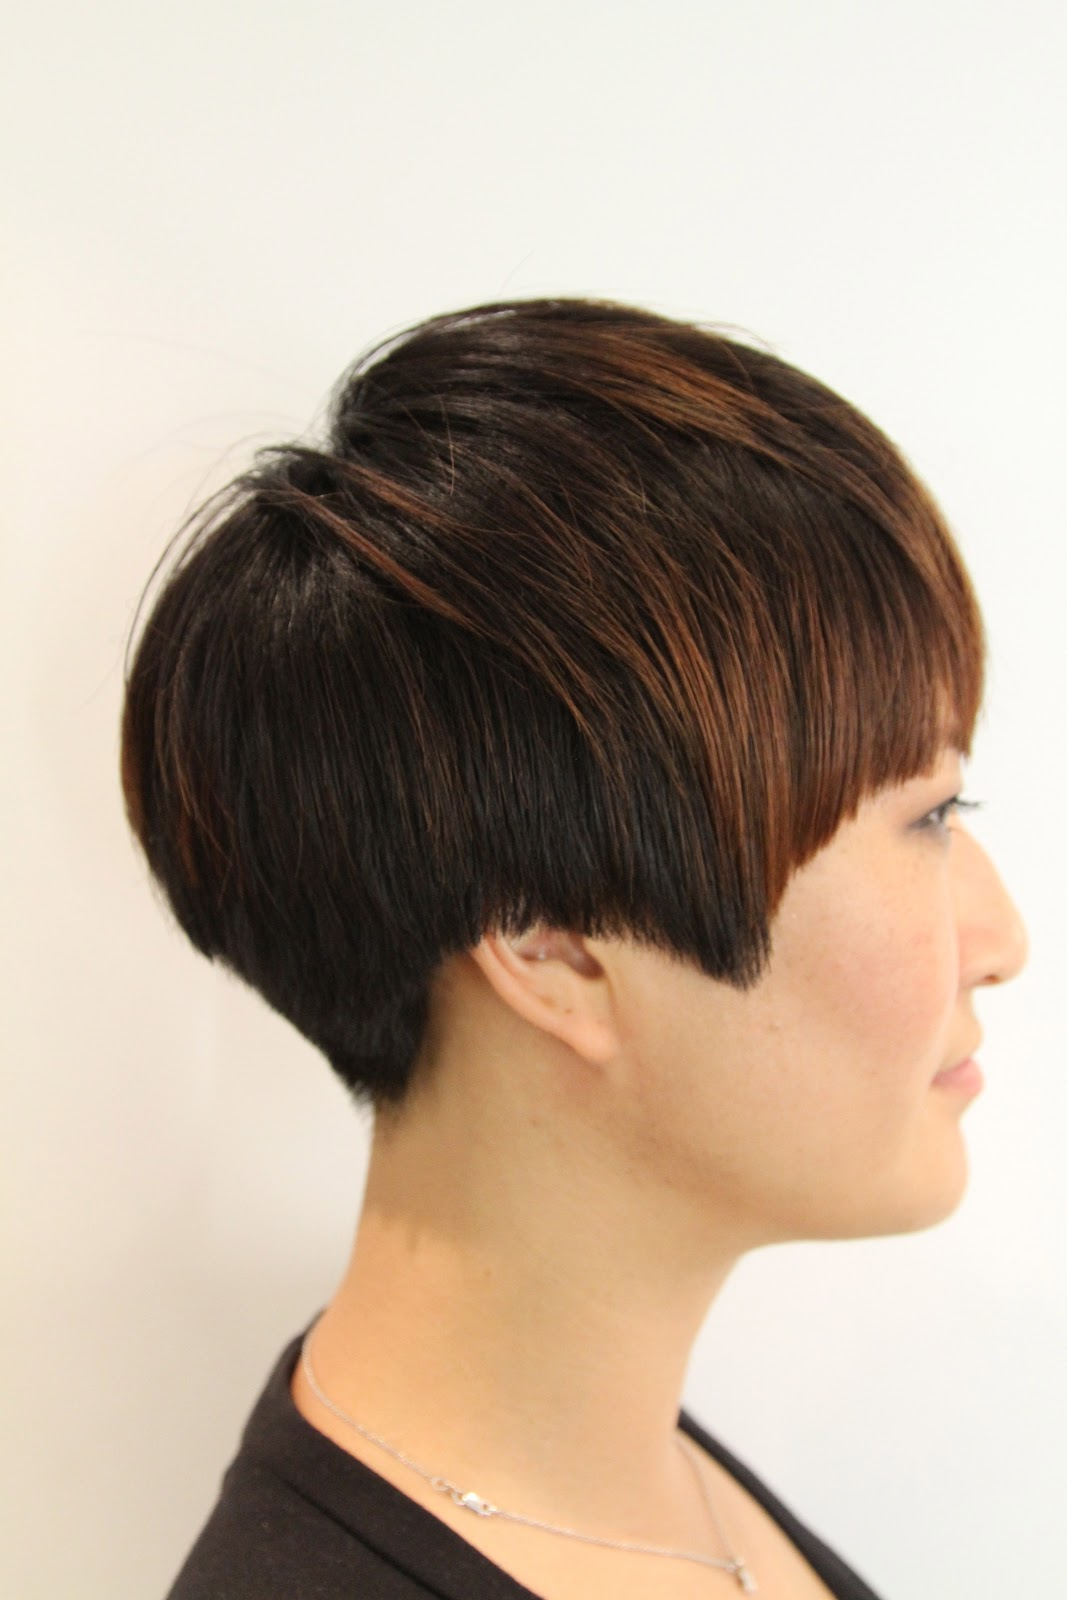 Salon Cut In How To Cut Hair Like Anh Co Tran Hairstylegalleries